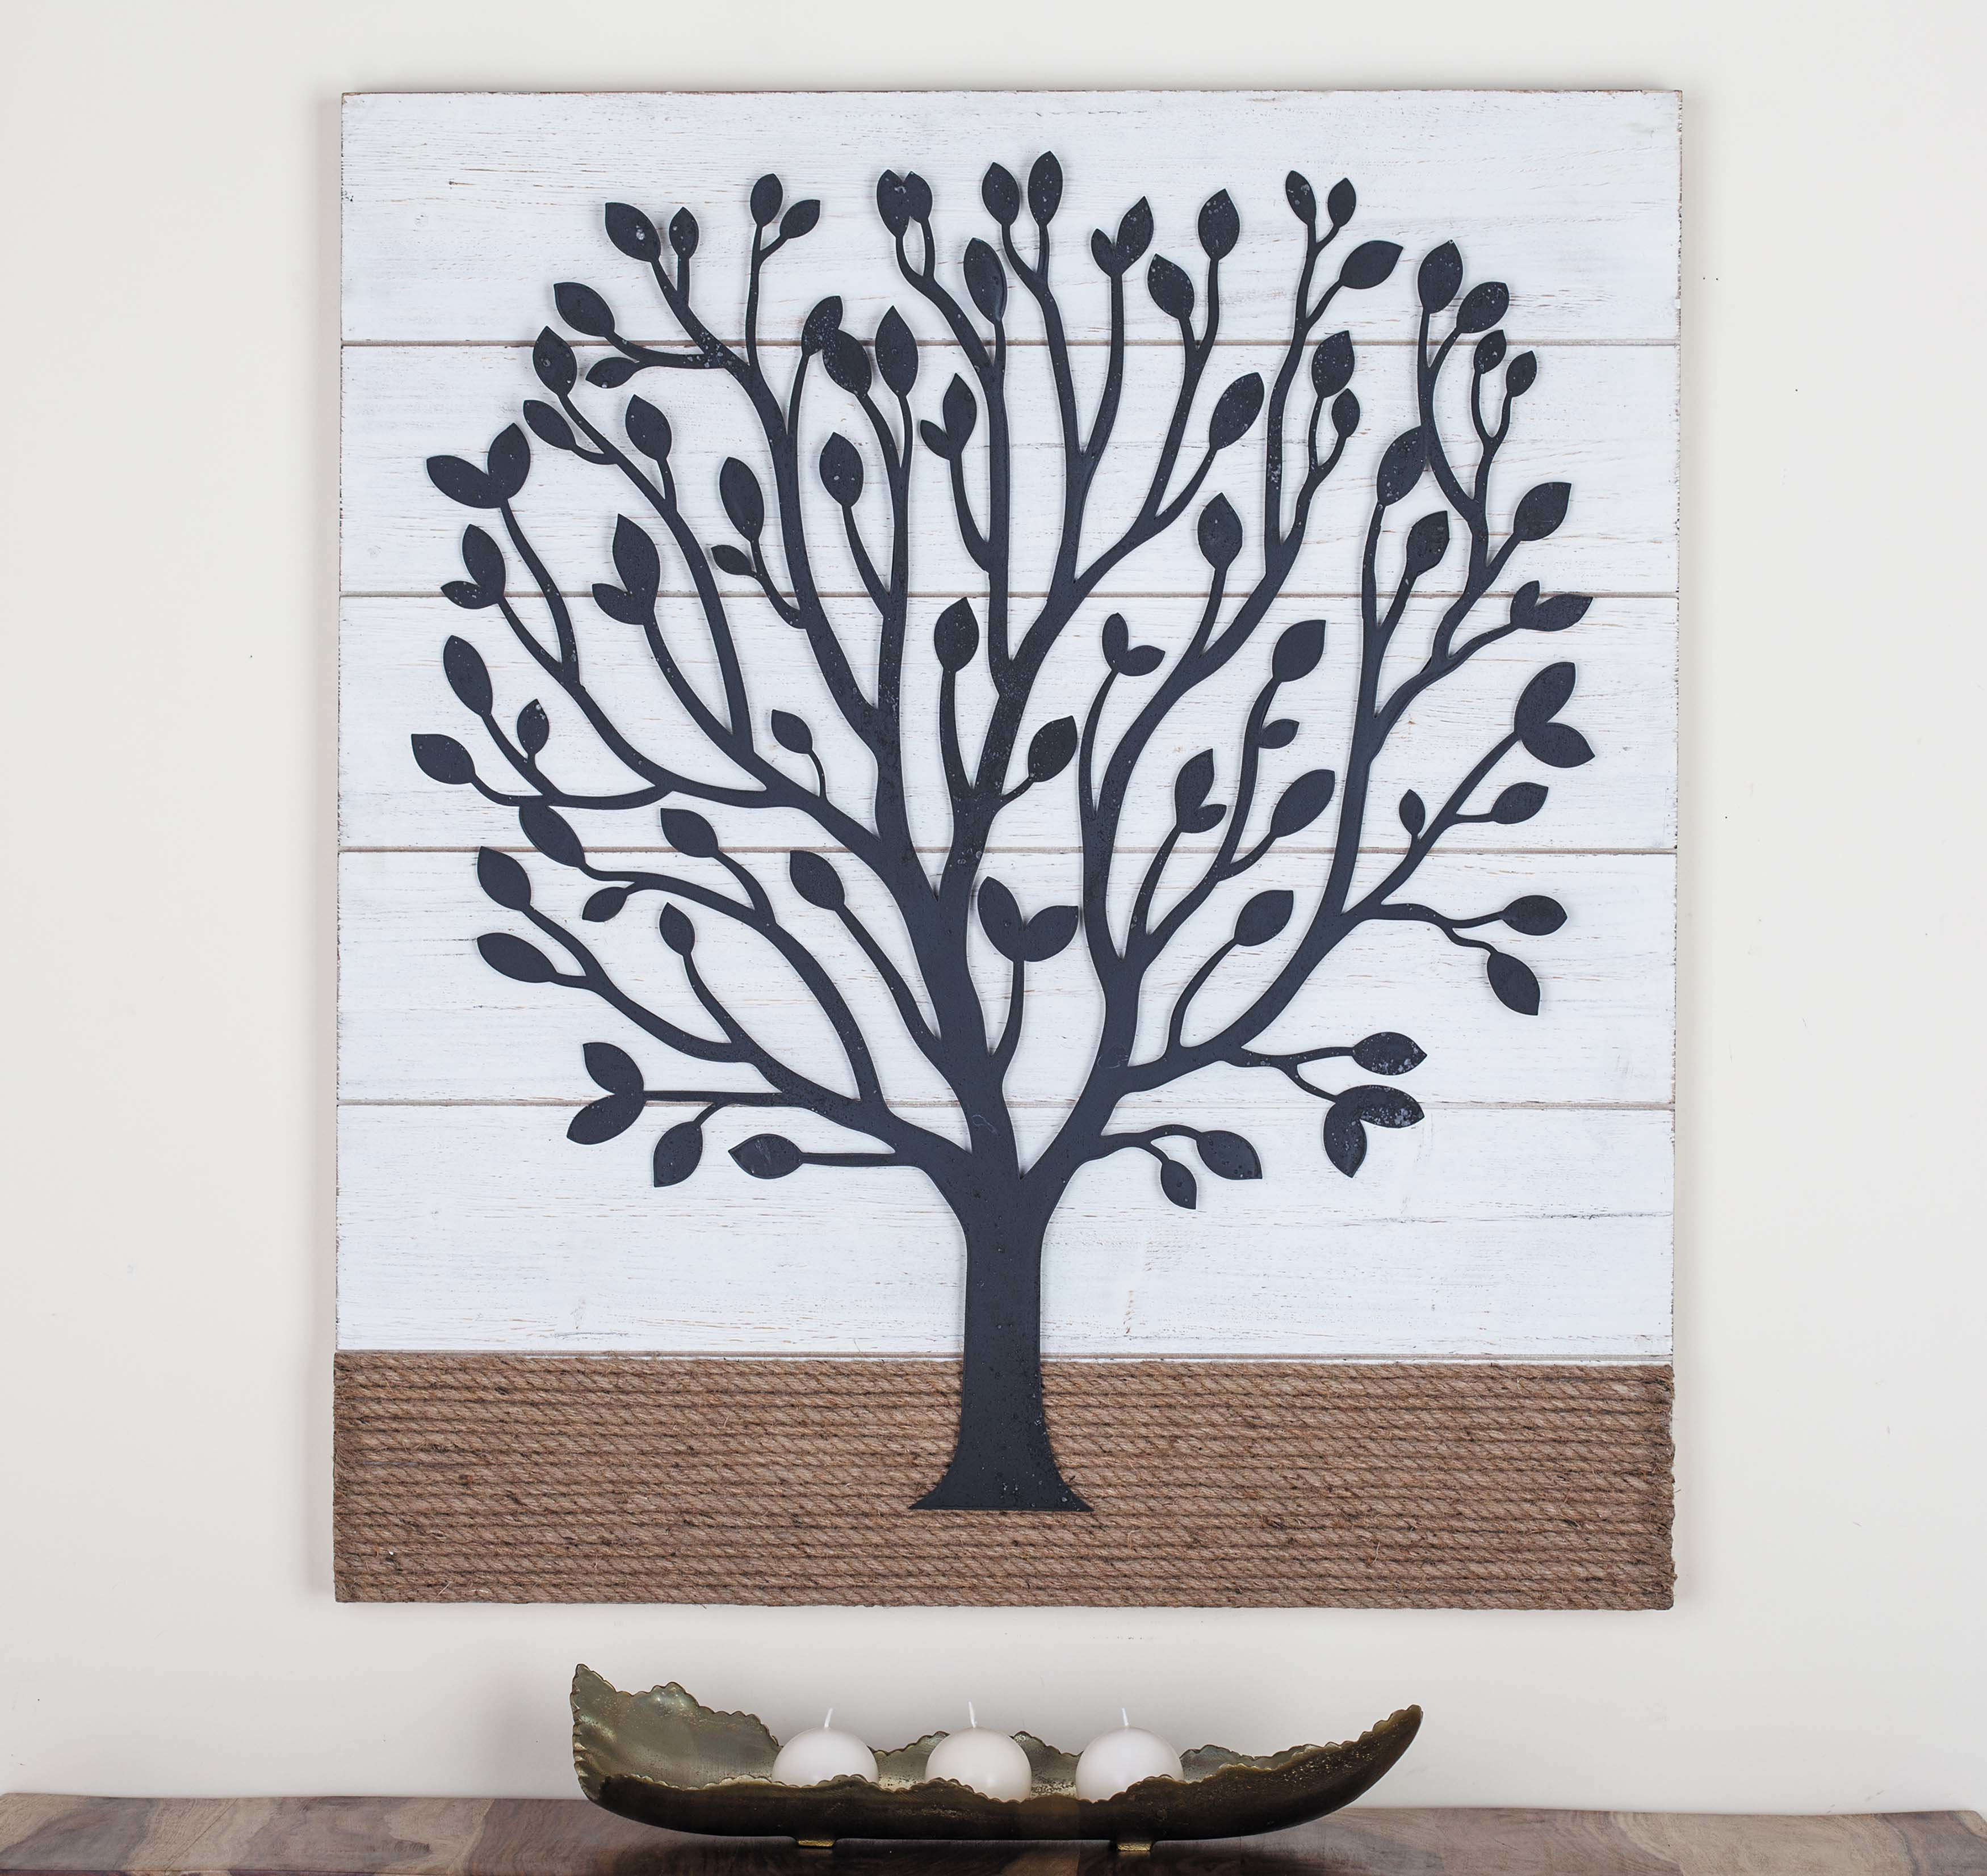 Wood/metal Rope Wall Décor with Metal Rope Wall Sign Wall Decor (Image 29 of 30)